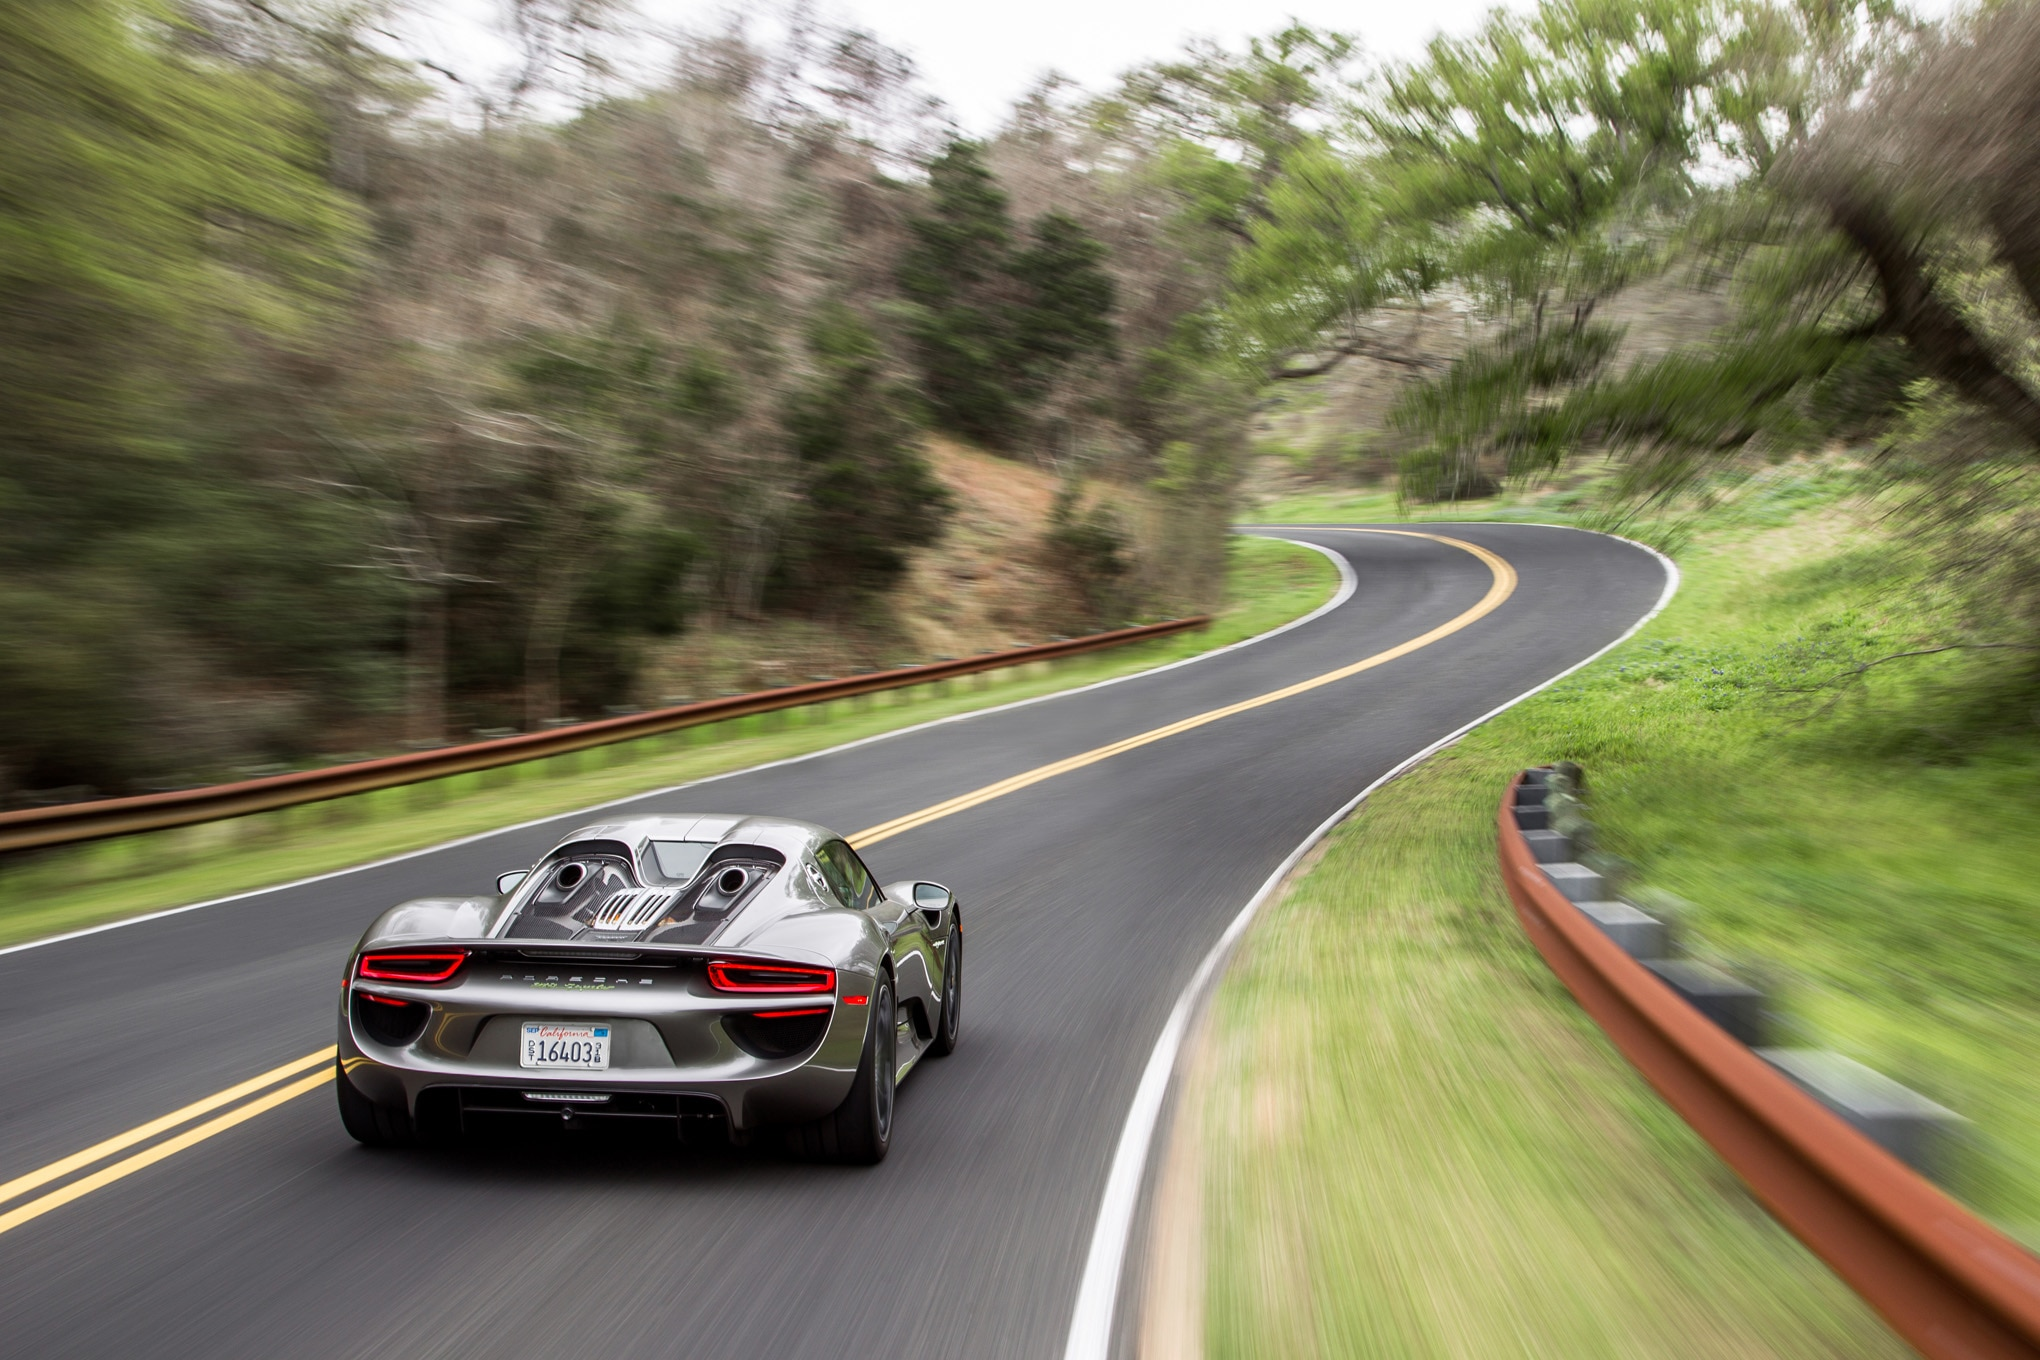 2015-Porsche-918-Spyder-rear-end-in-motion-031 Fabulous How Much Does the Porsche 918 Spyder Concept Cost In Real Racing 3 Cars Trend